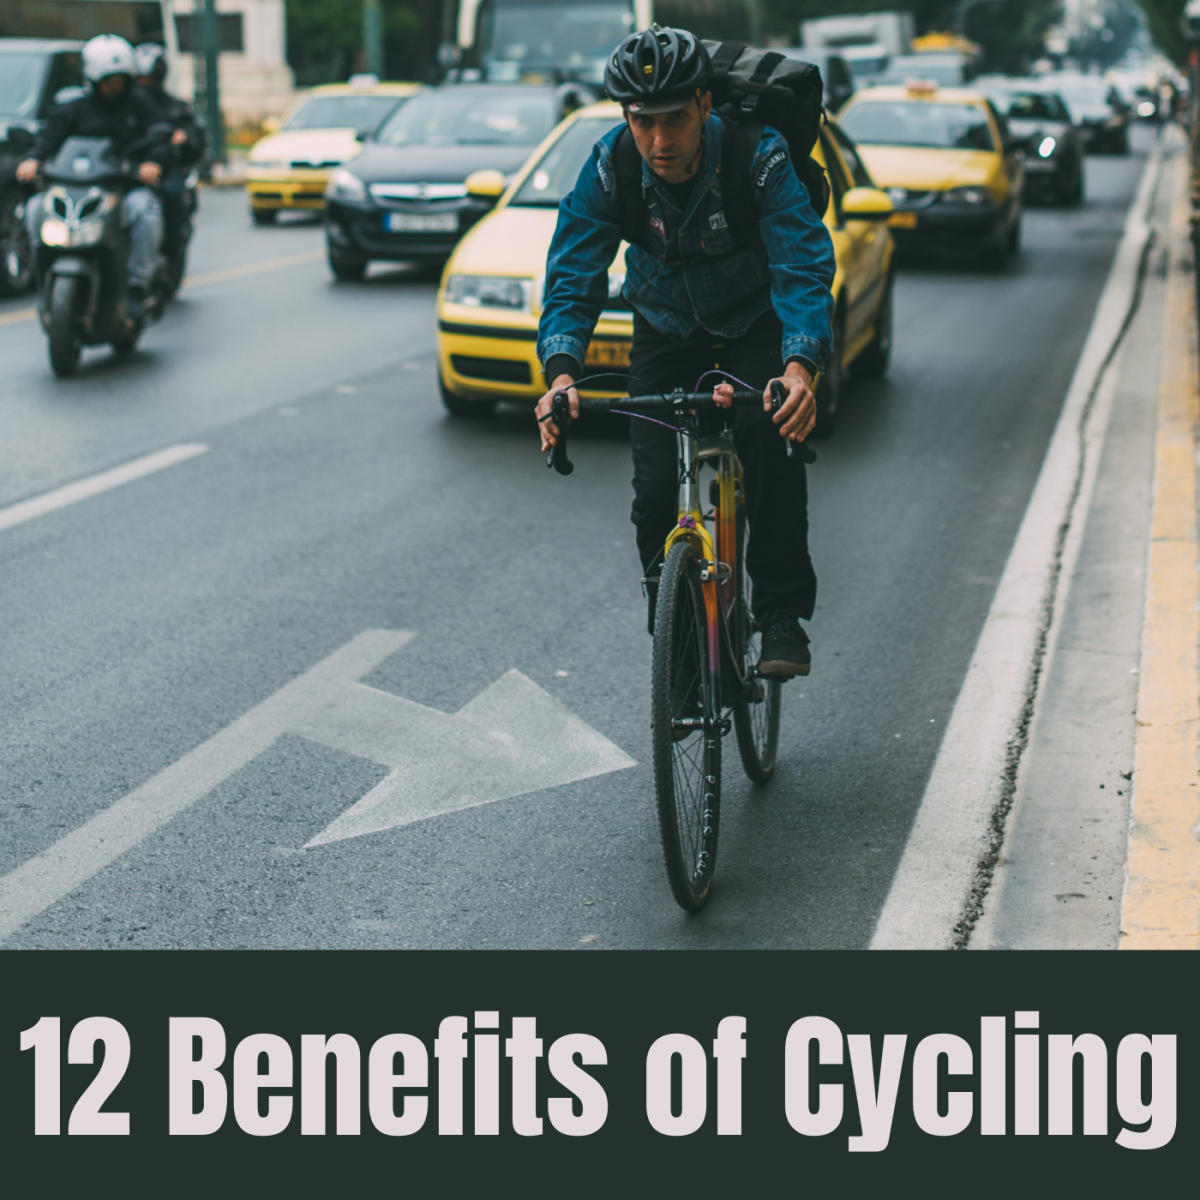 12 Benefits of Cycling